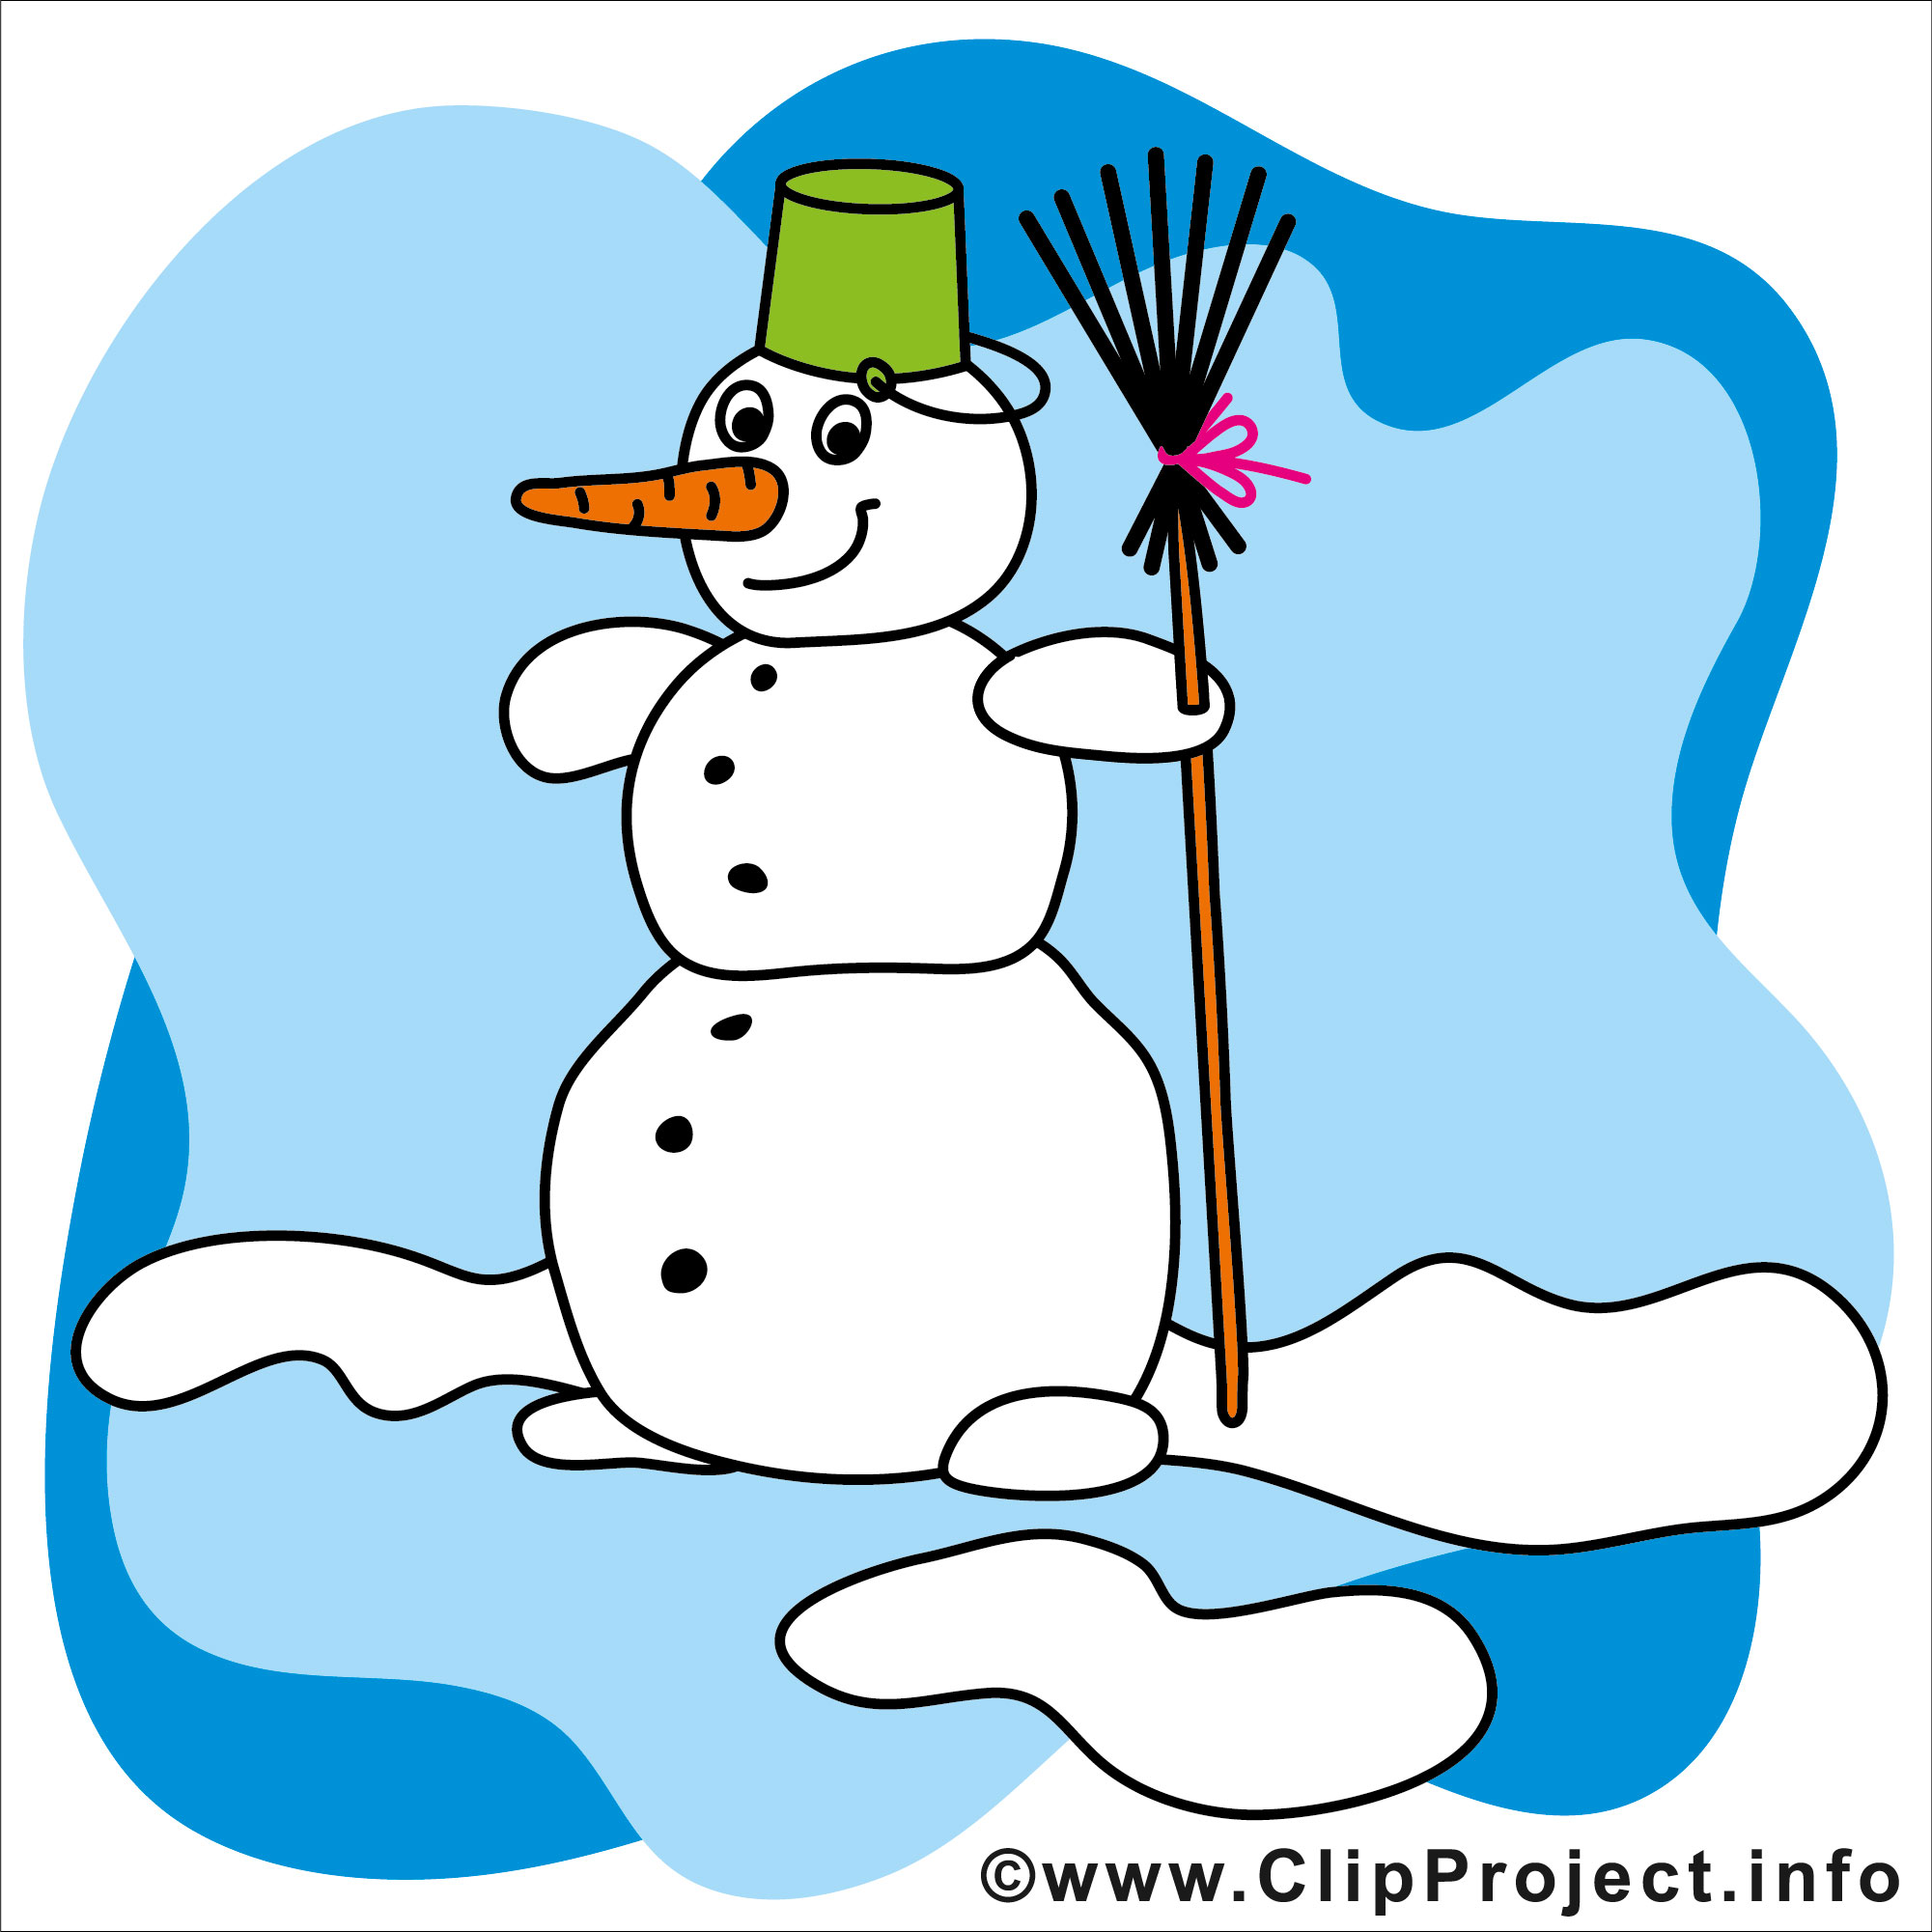 Winter wonderland clip art top hd images for free image #10108